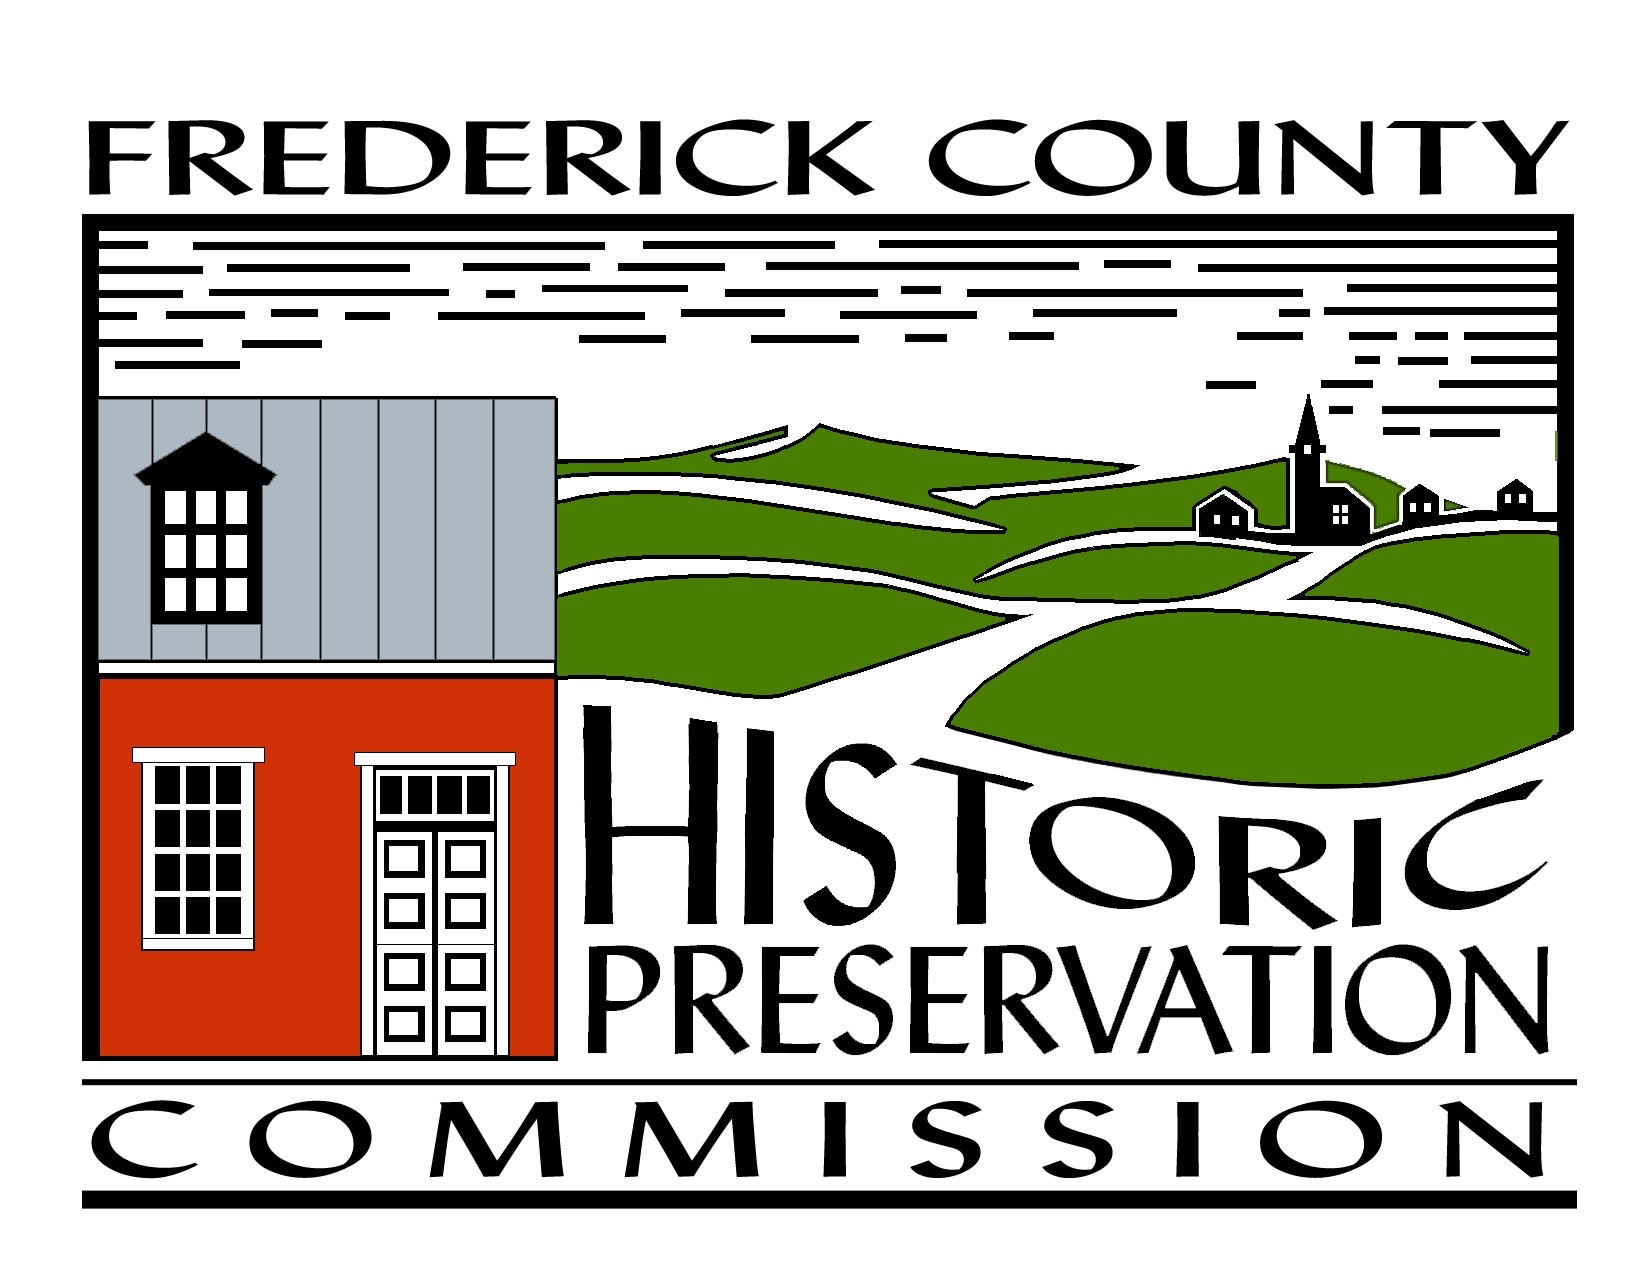 HistoricPreservationLogo-Color-01.JPG